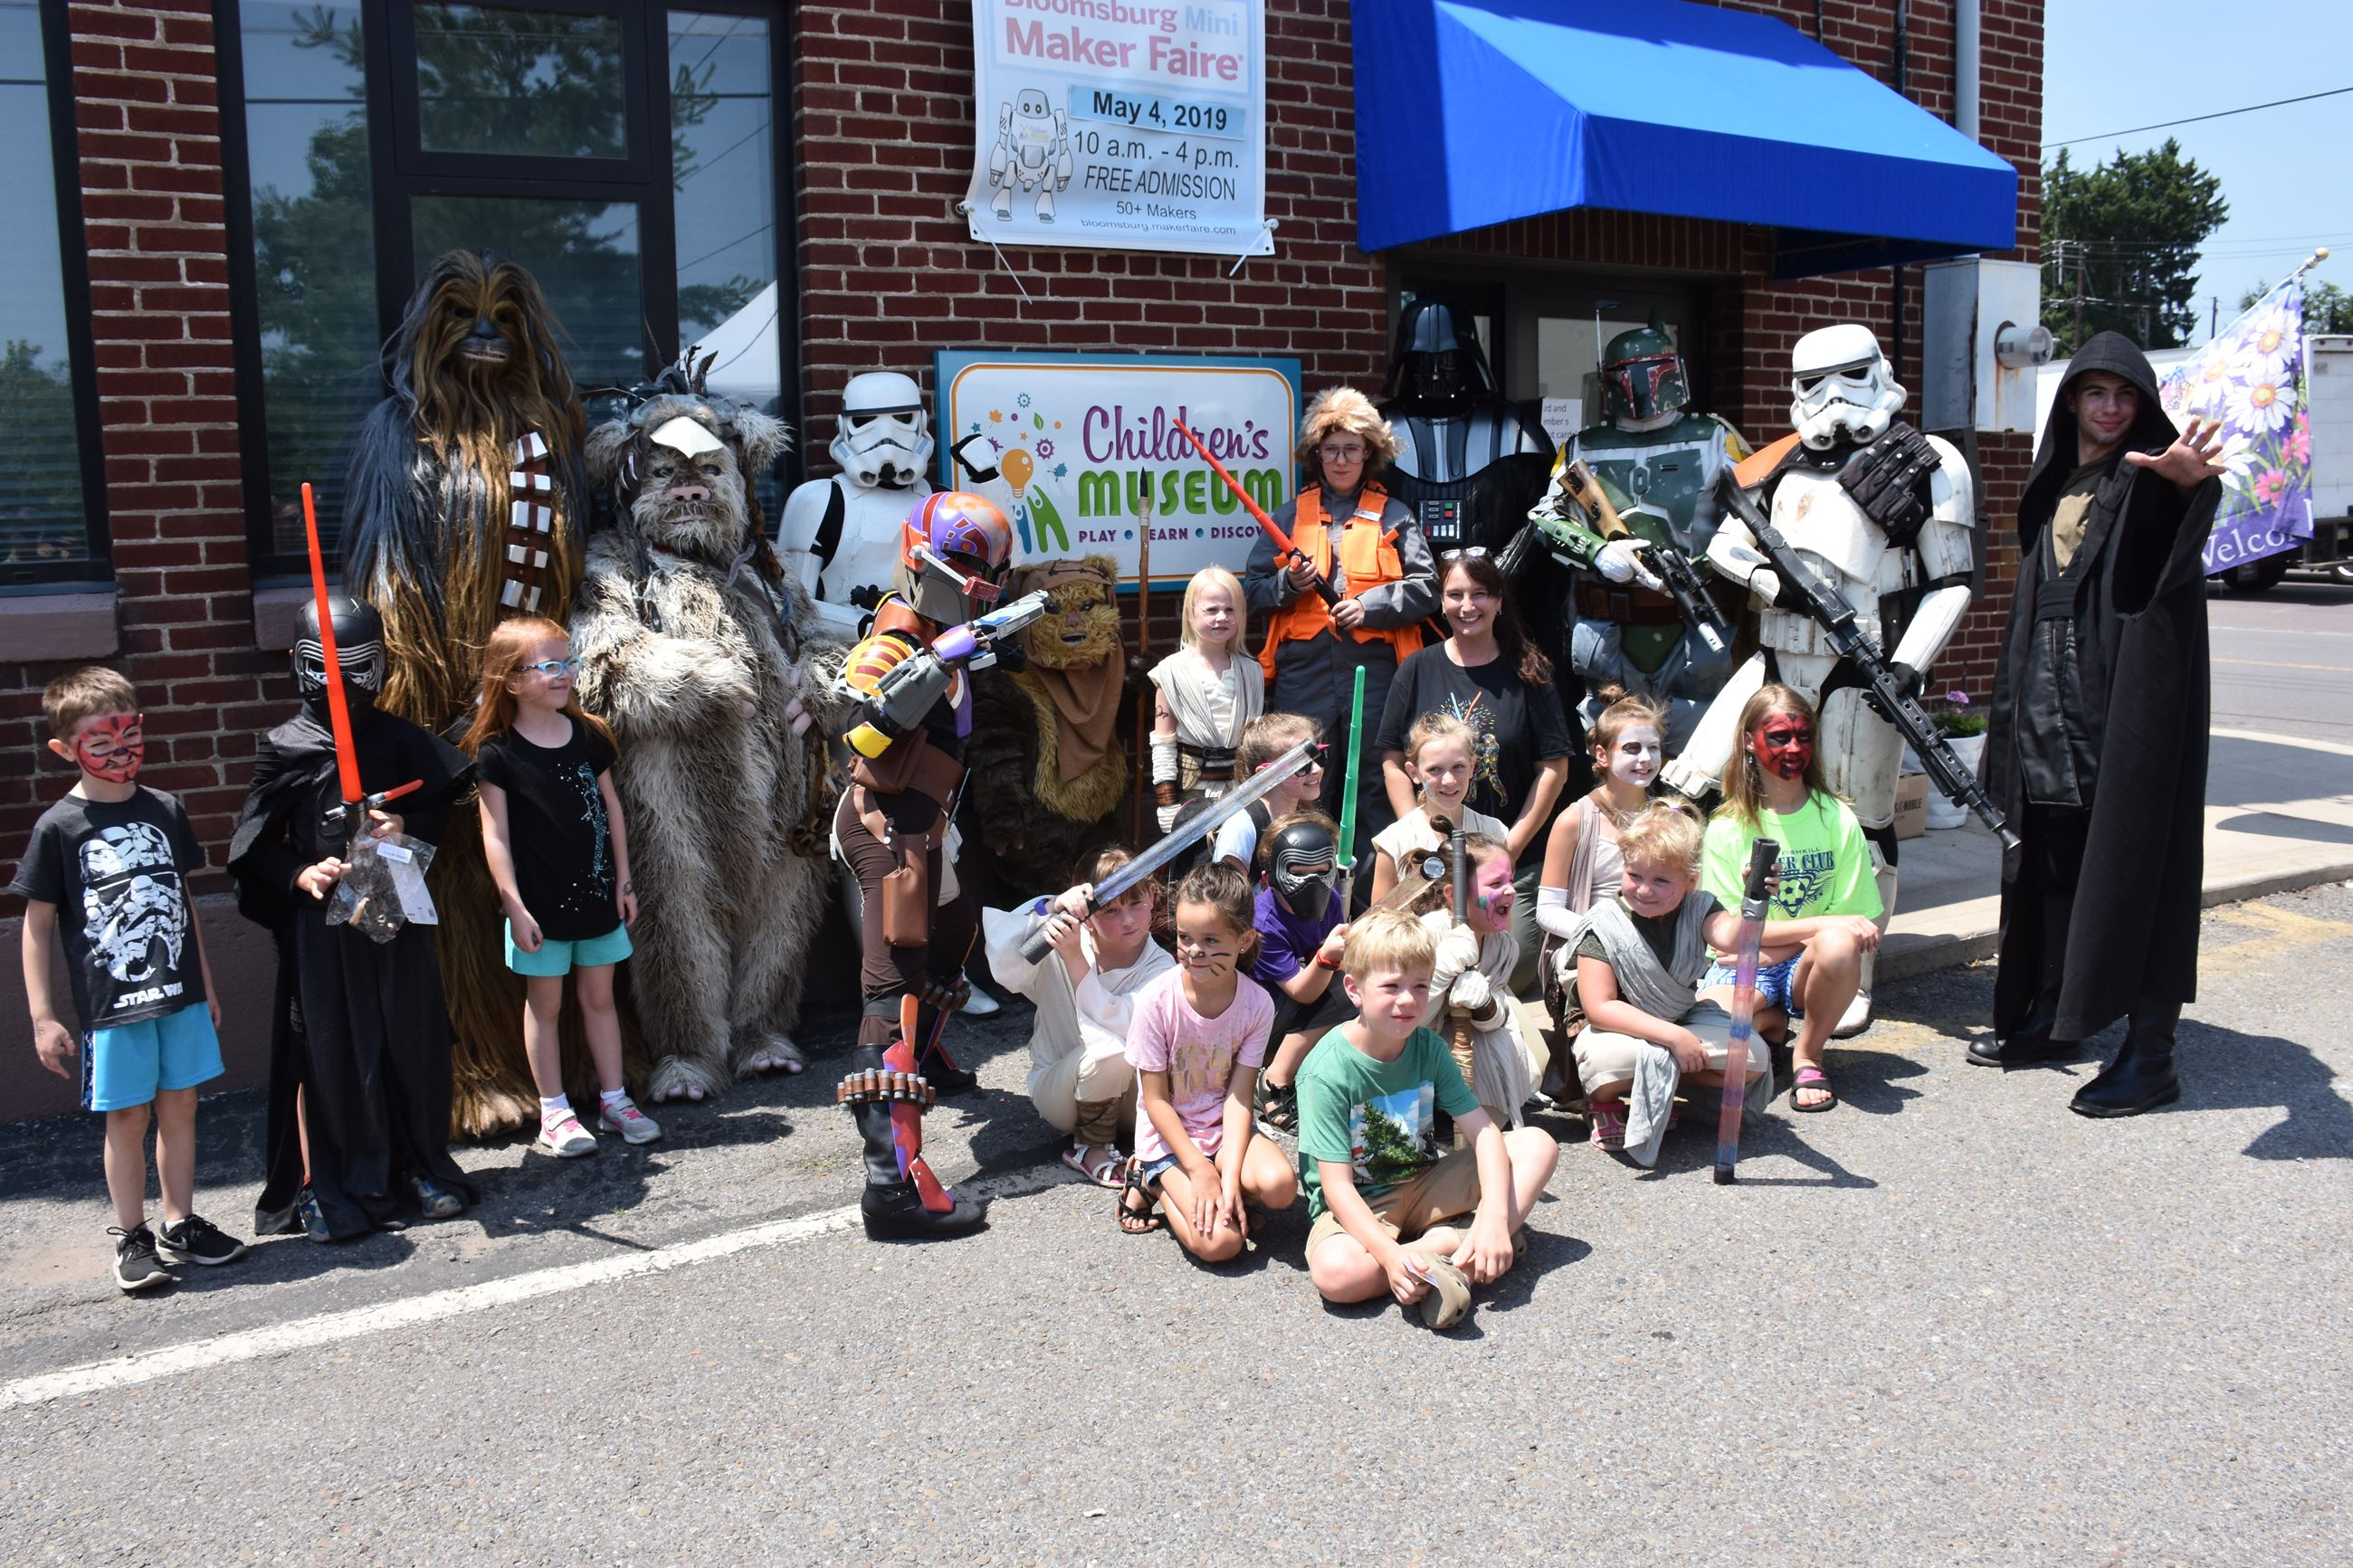 Bloomsburg Childrens Museum Event